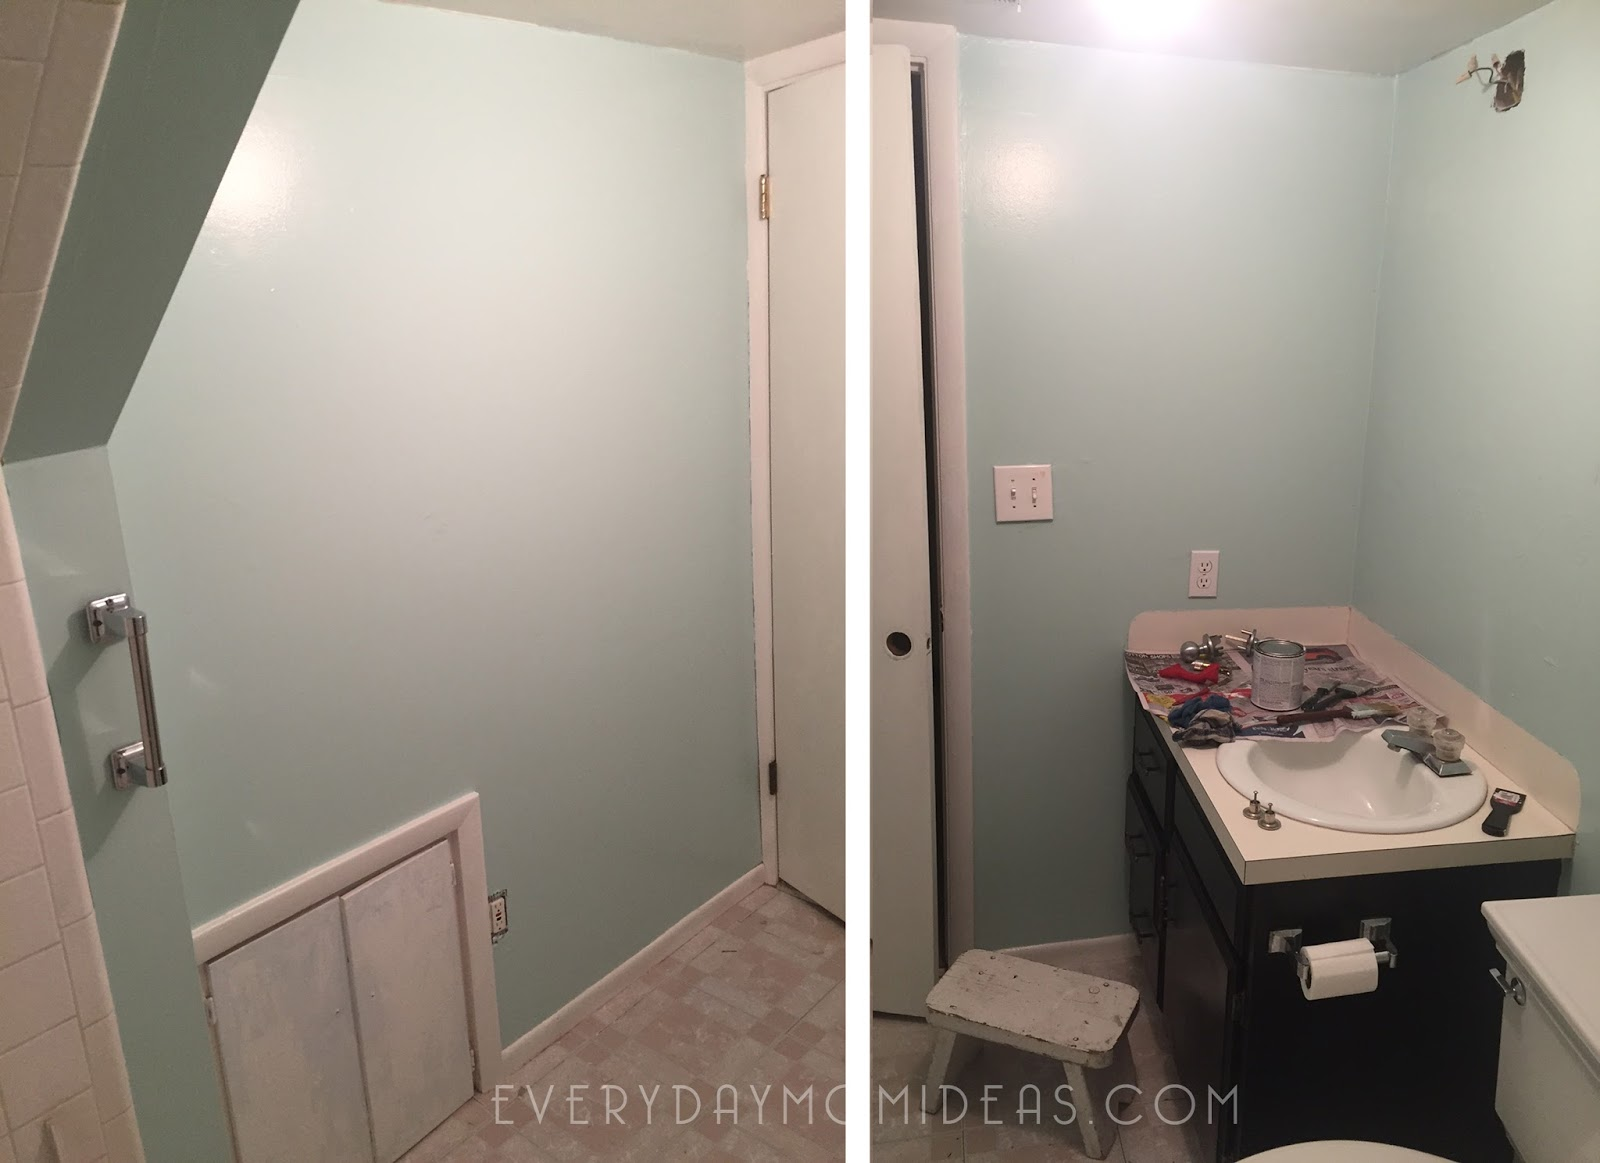 Great  basement bathroom one little project at a time Looking back I think I might have lost my mind due to pregnancy related issues and or I was nesting